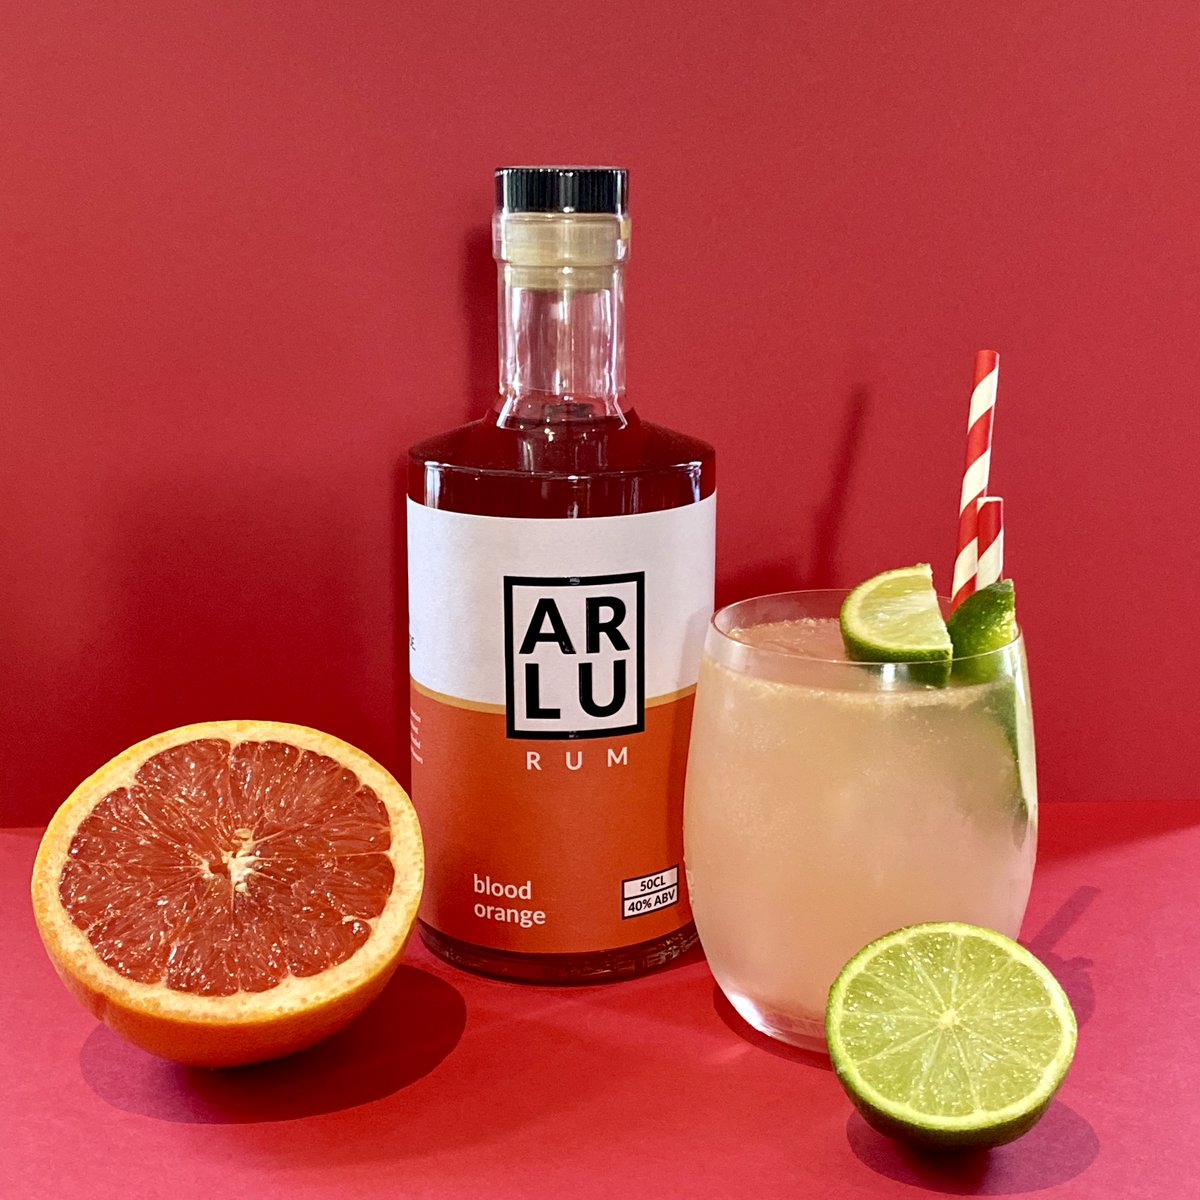 Working hard? Don't forget to play hard too! Have a bit of fun with ARLU Rum.   Pair ARLU Blood Orange Rum with ginger beer and a splash of lime to brighten up a dull day.   Shop: https://t.co/v5gMUWiLvt  #workhardplayhard #rum https://t.co/Q5Afhhbqoq